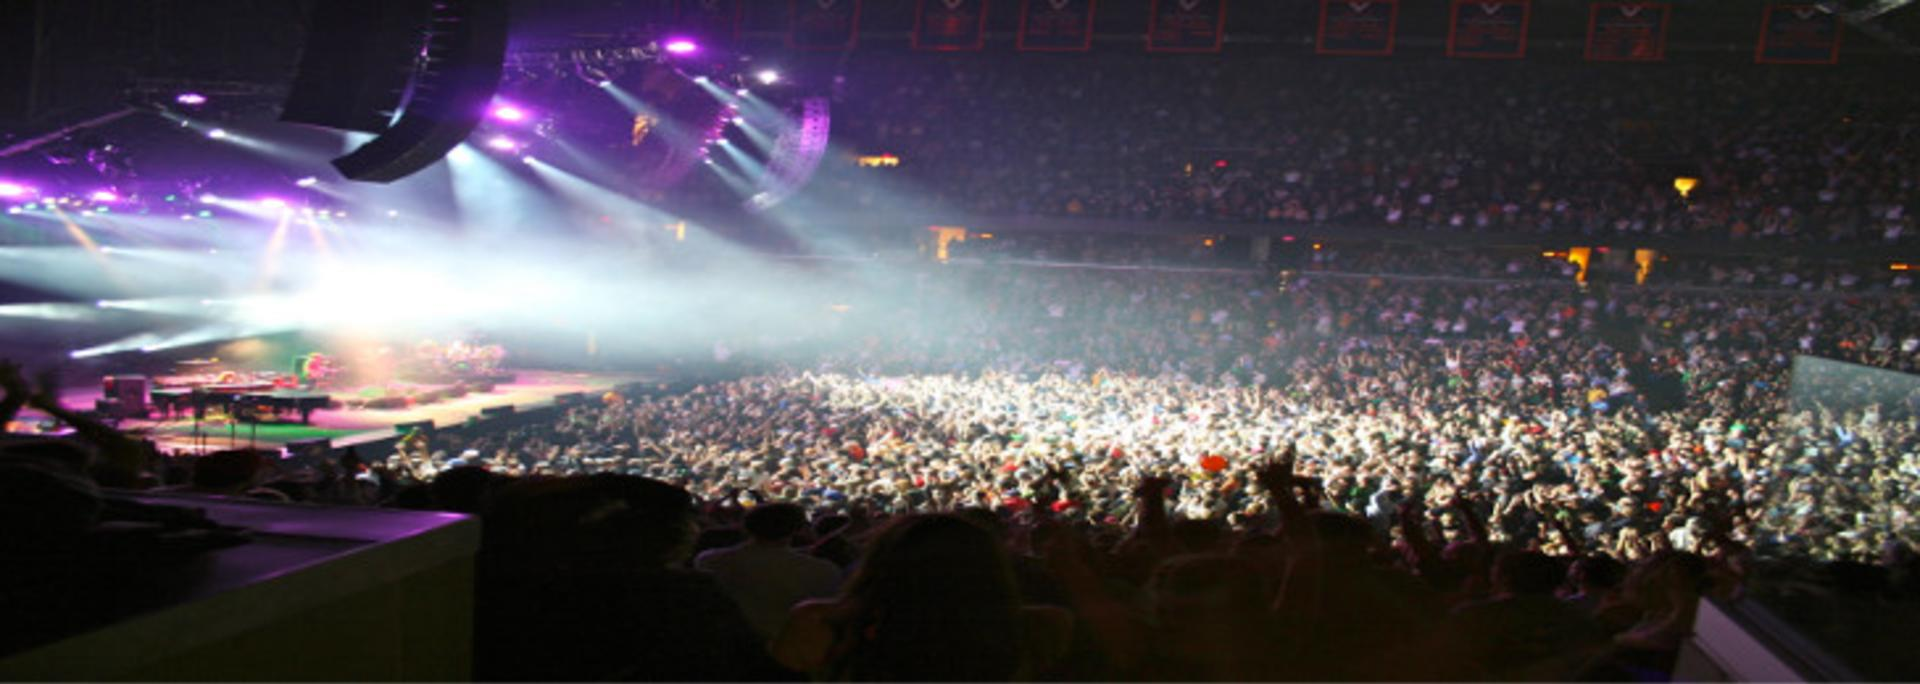 Concert at John Paul Jones Arena